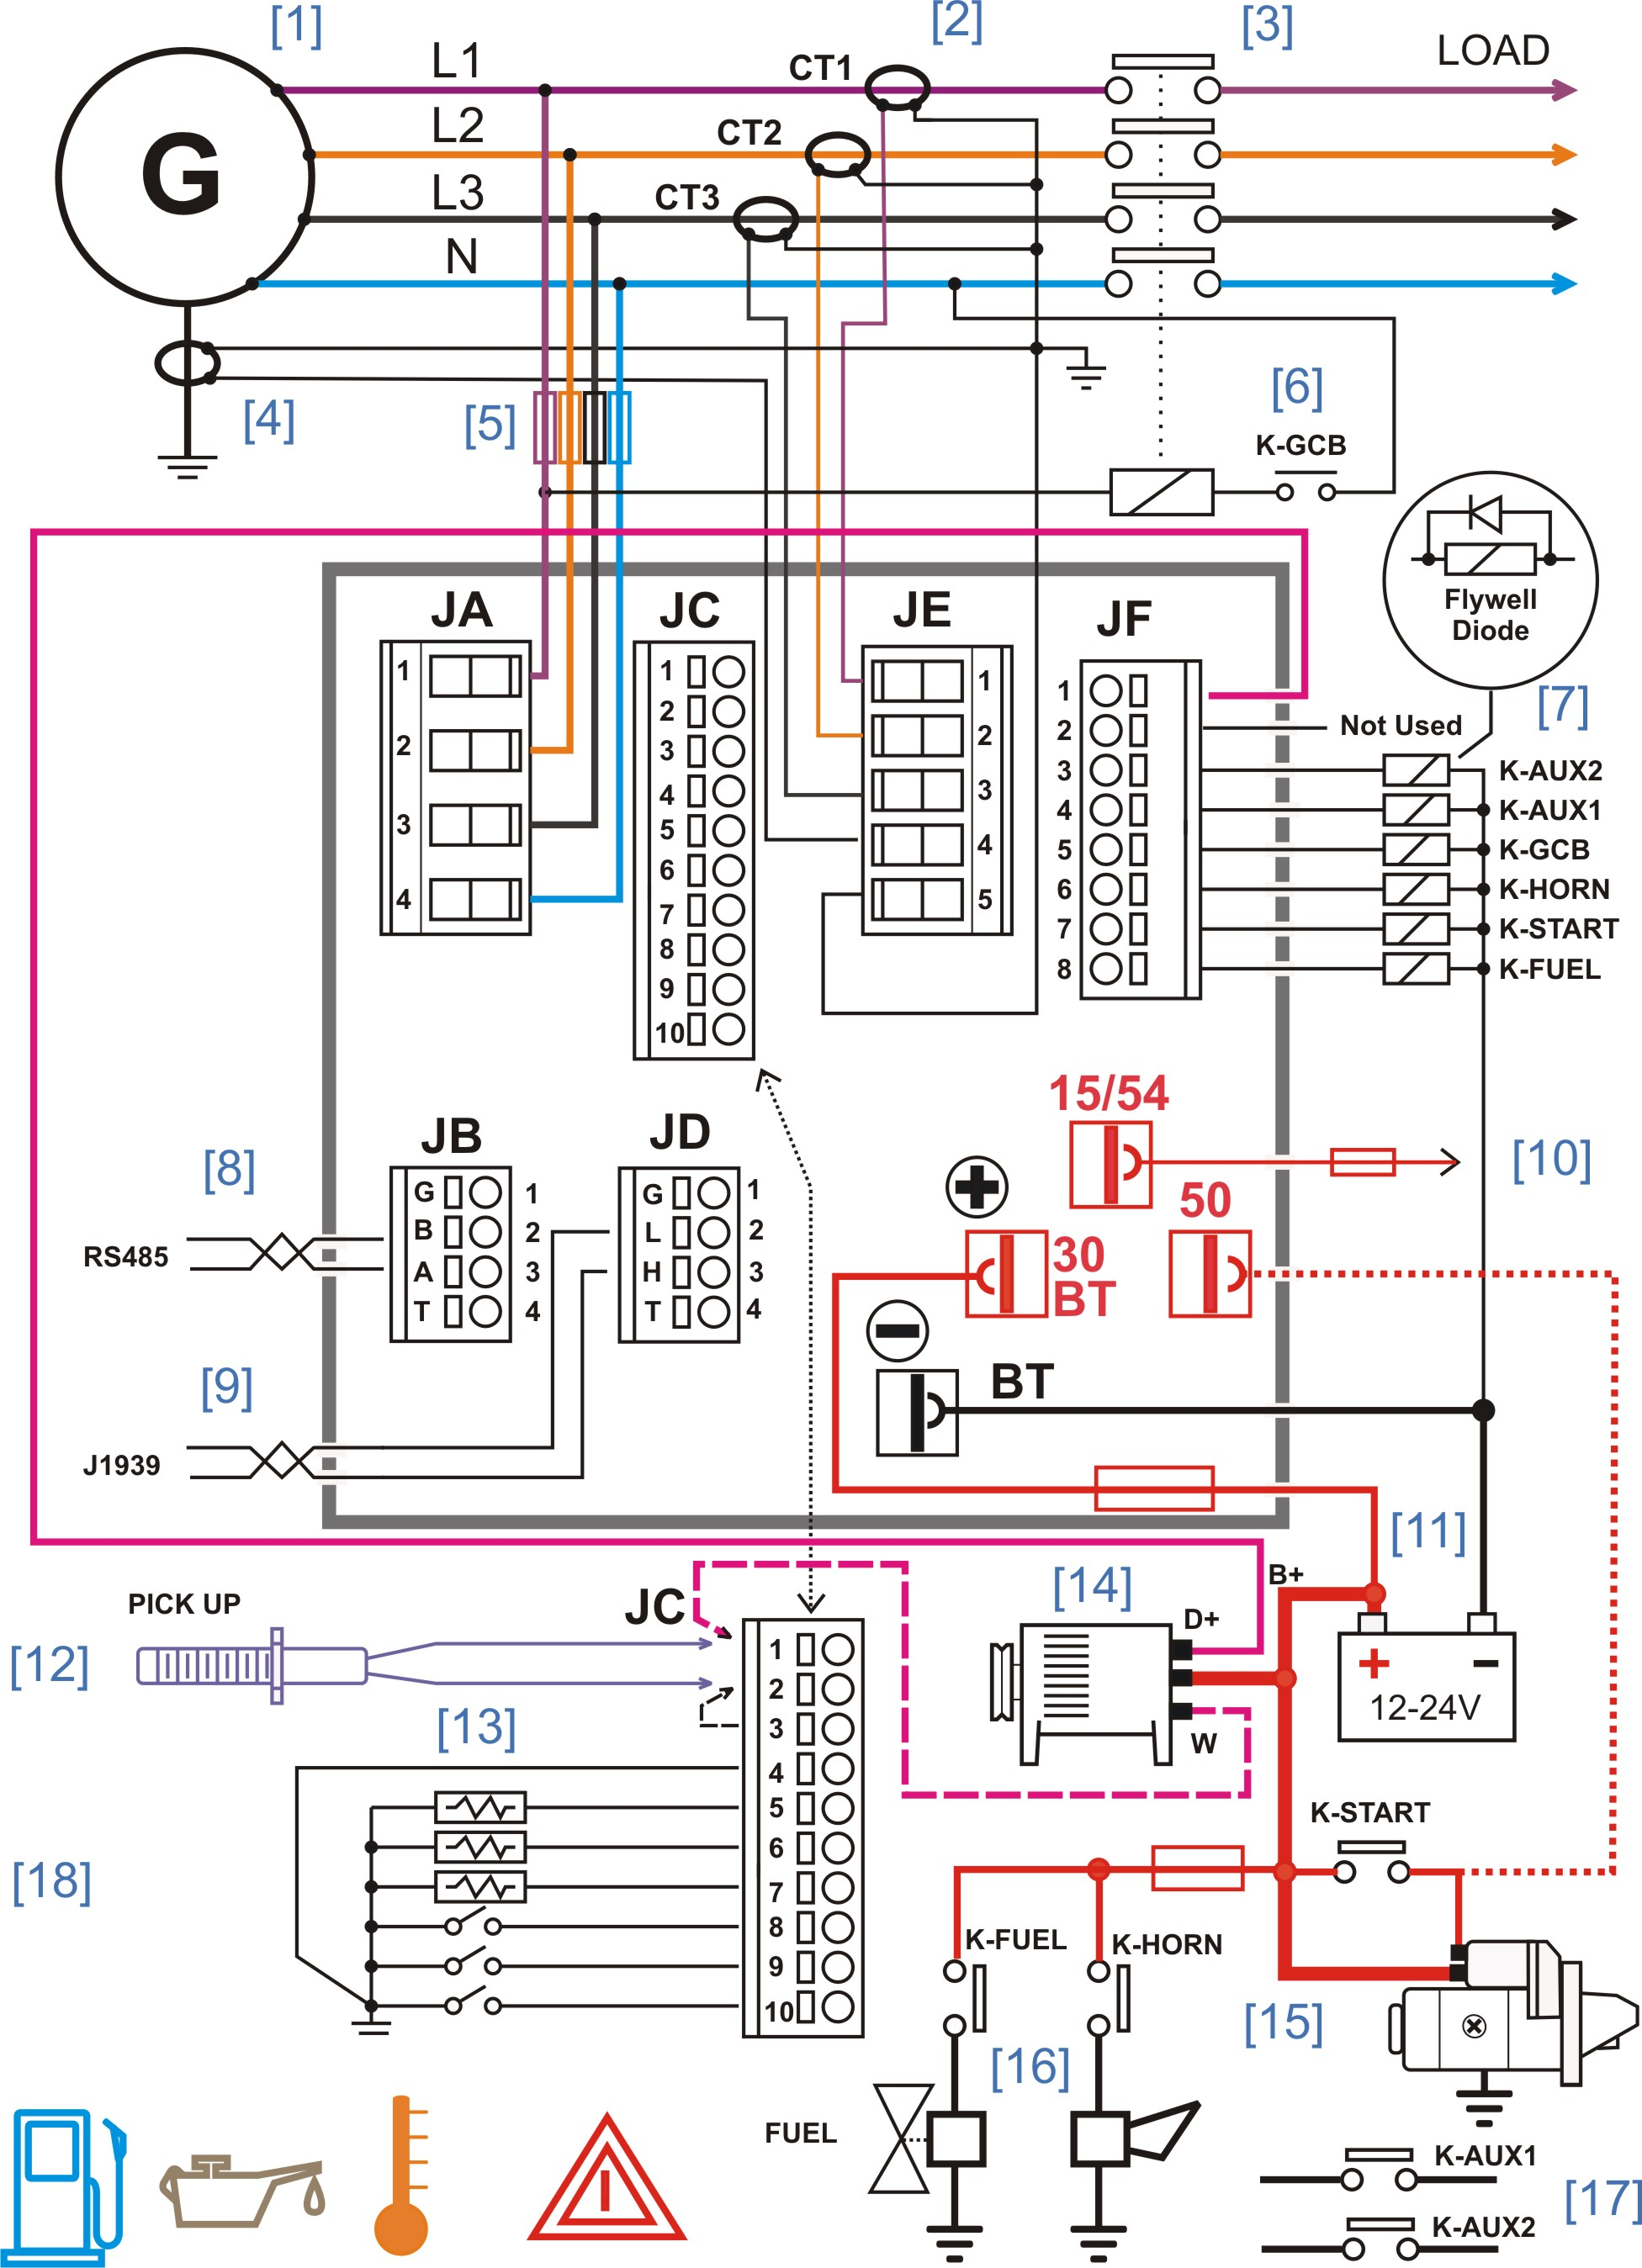 Generator Controller Wiring Diagram generator controller wiring diagram genset controller controller wire diagram for 3246e2 lift at mifinder.co